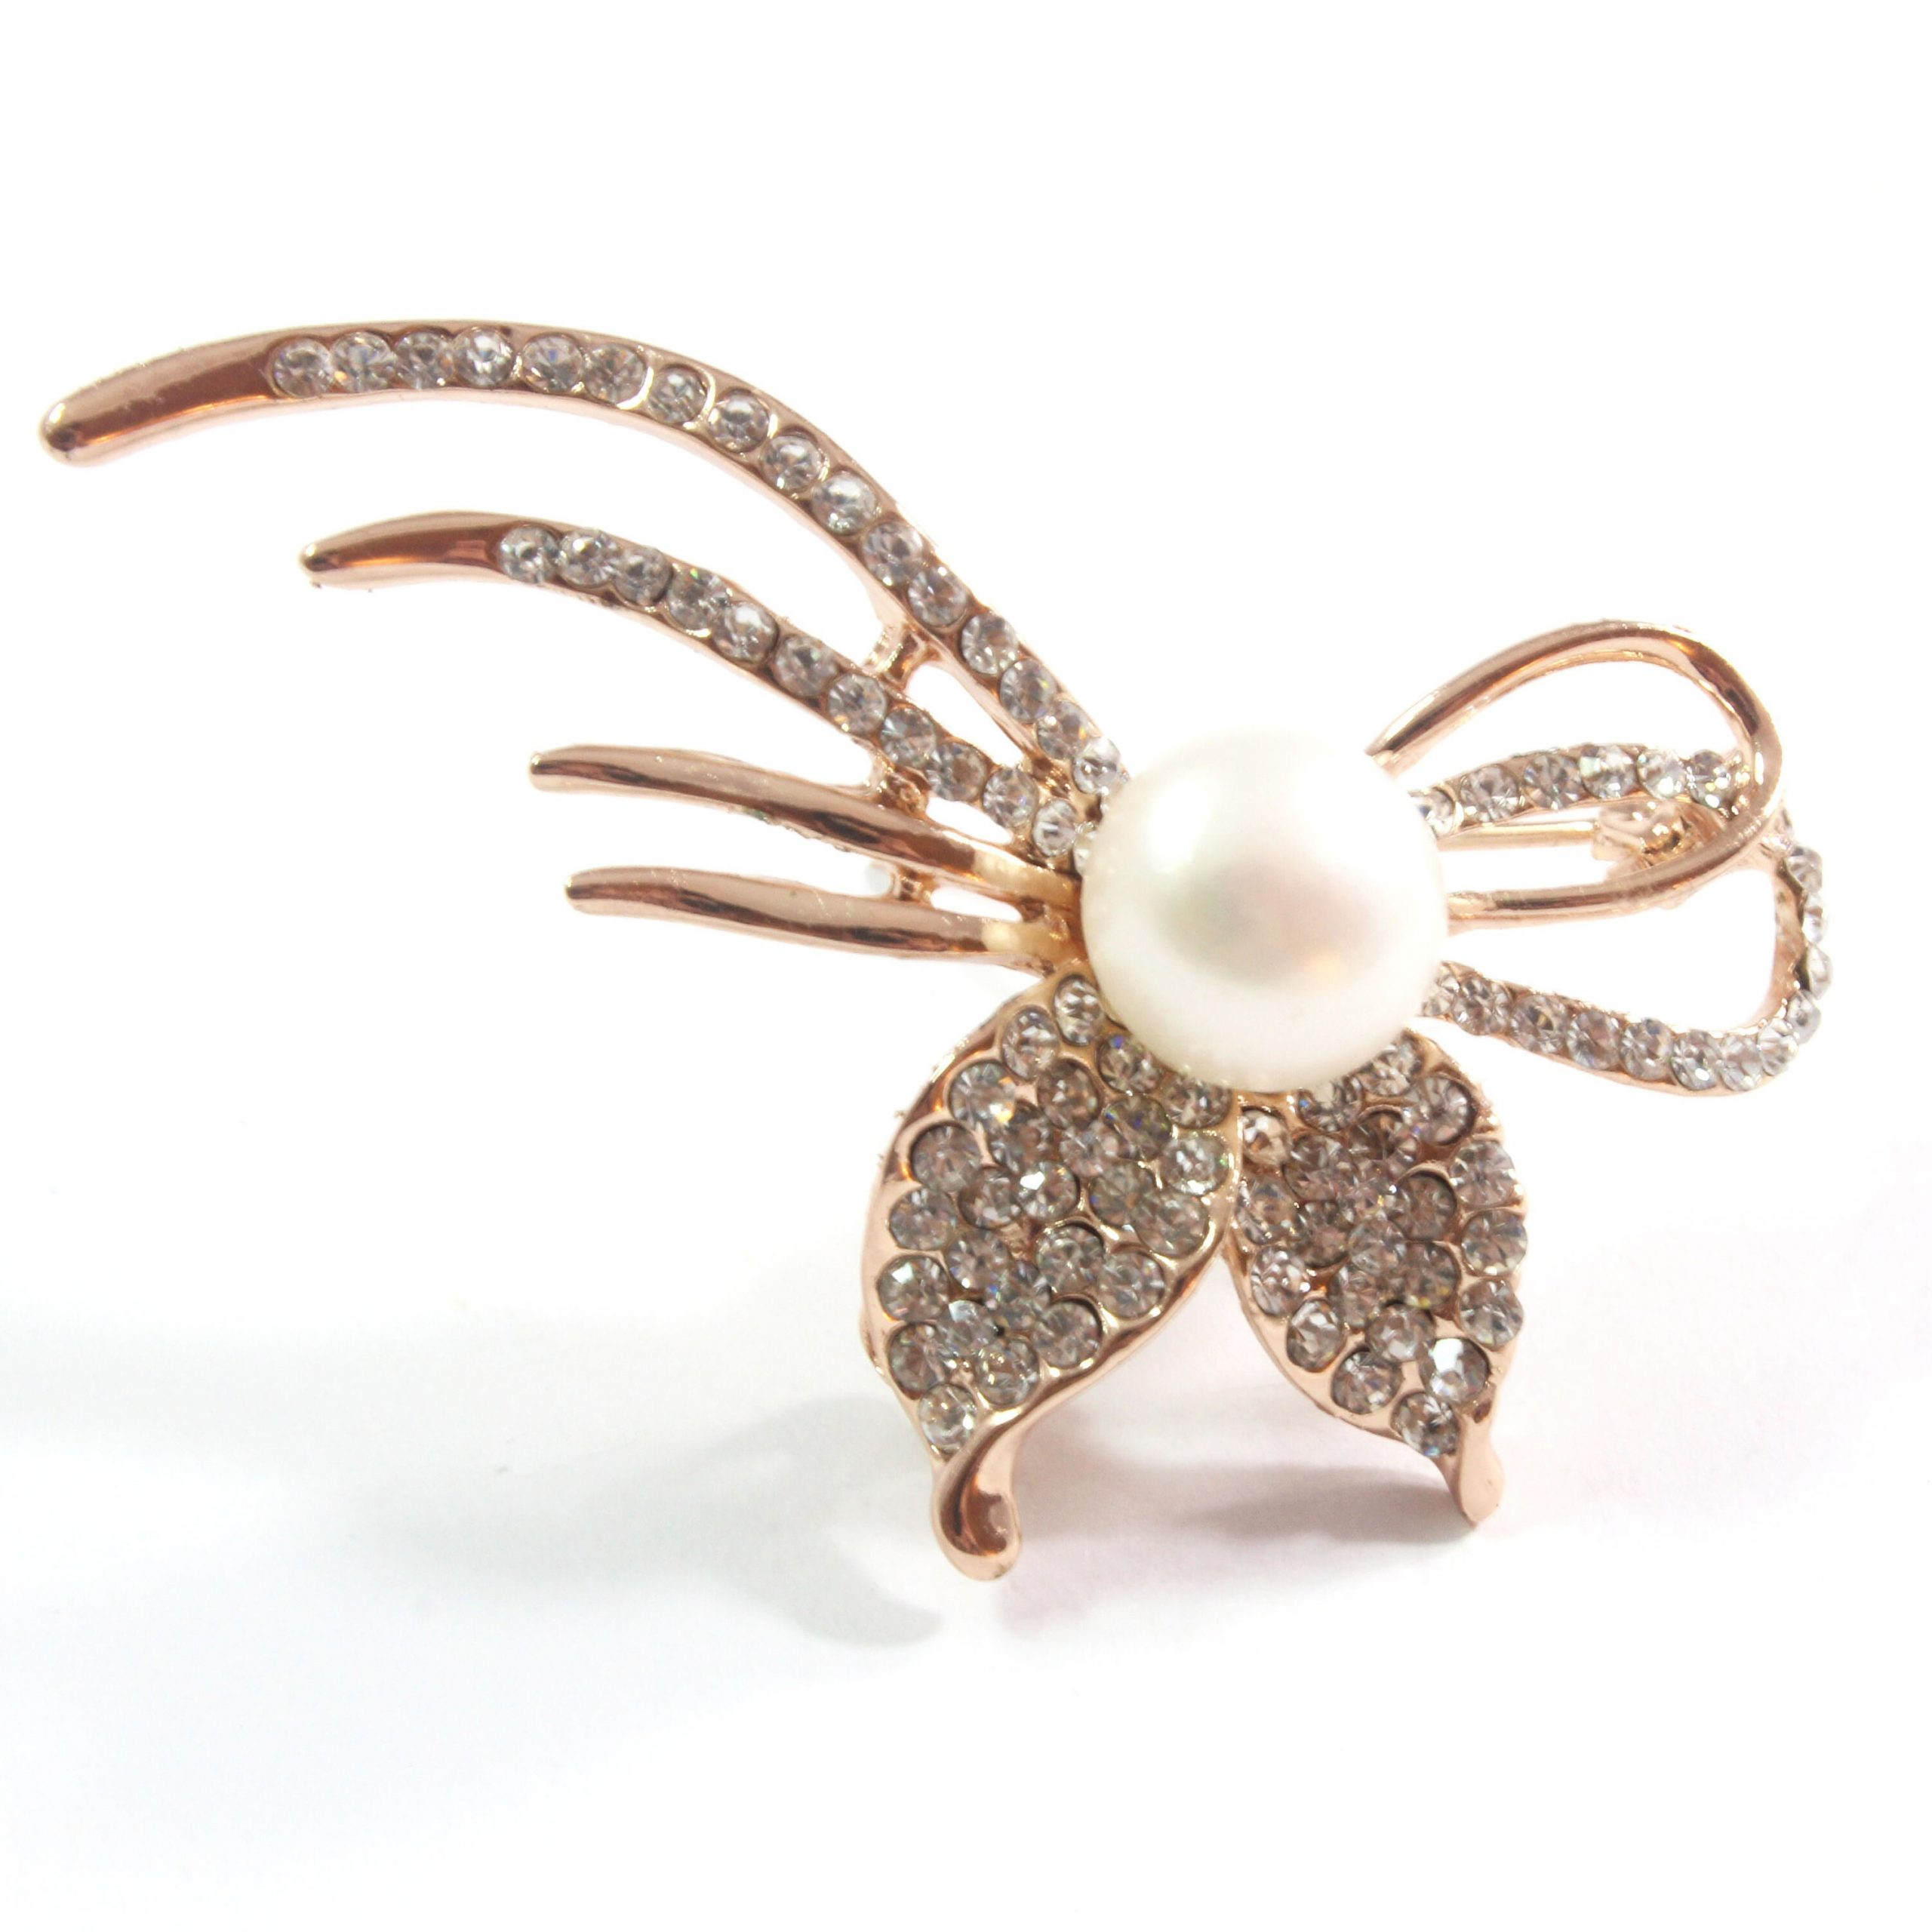 Mouse Freshwater White Cultured Pearl Brooch 10.5-11.0mm